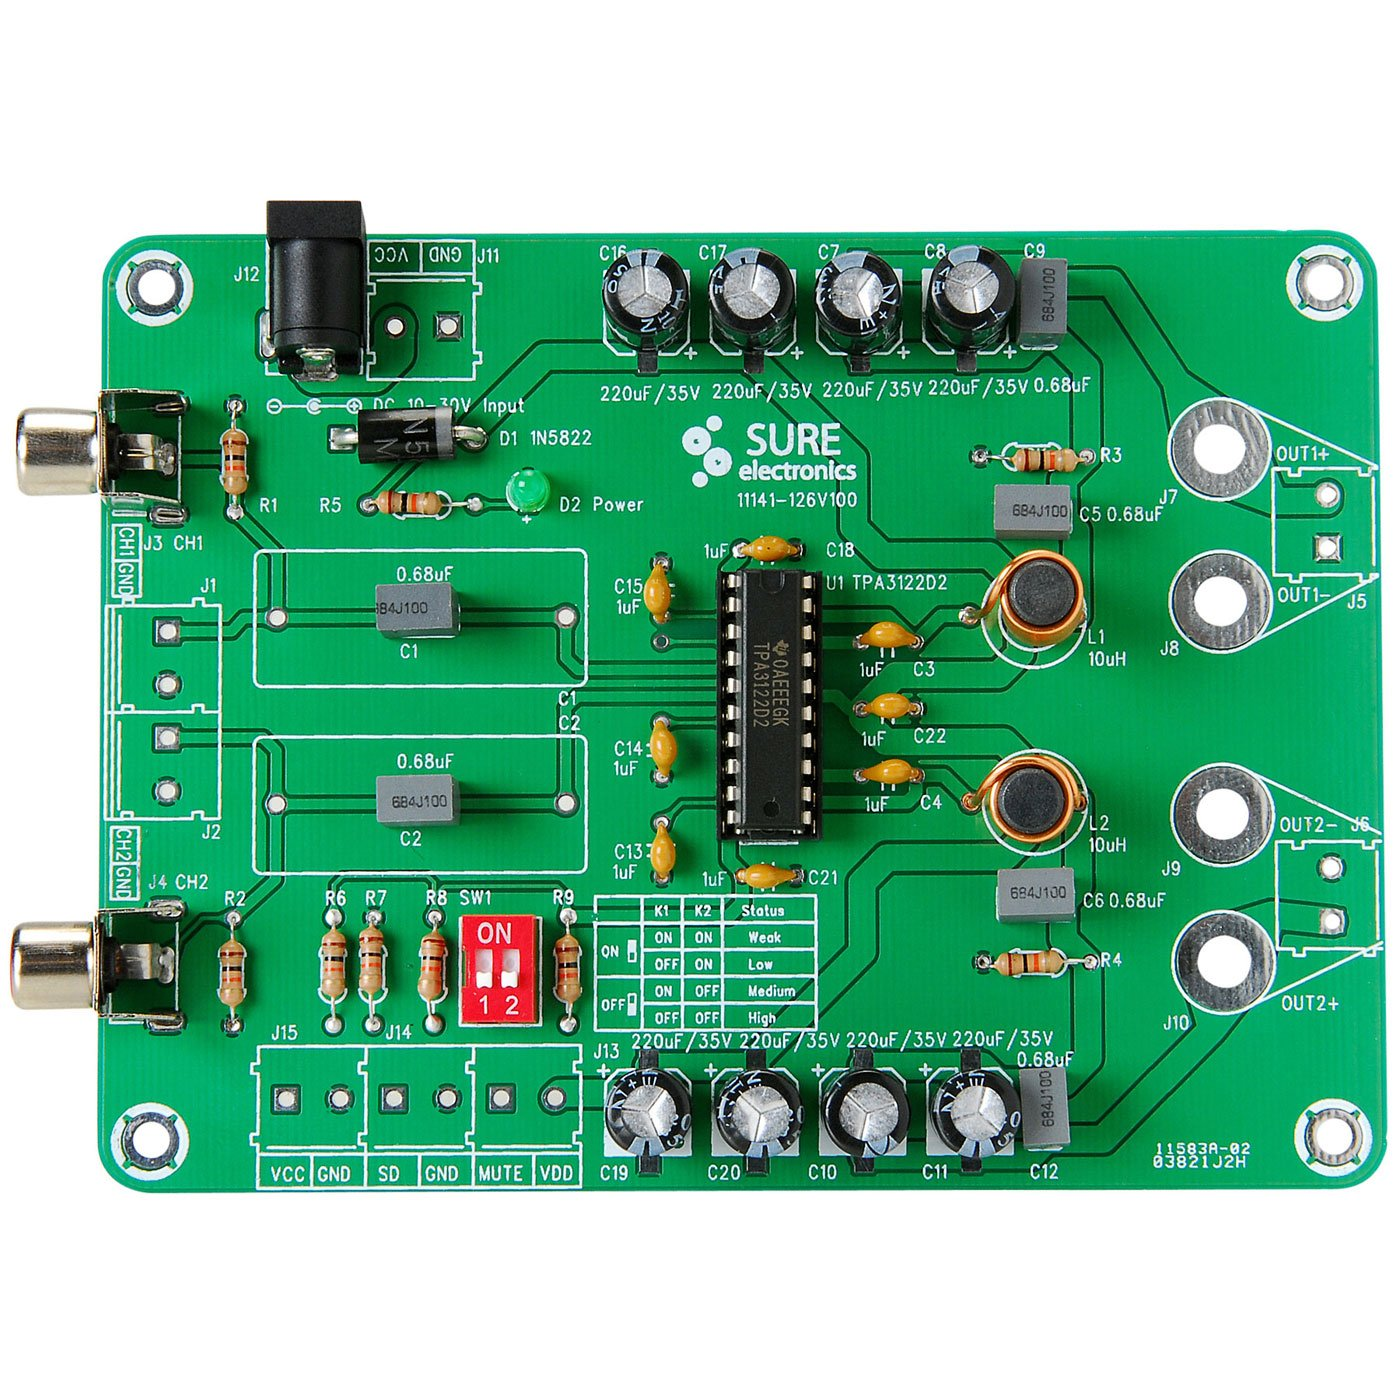 Parts Express 2x15w Class D Stereo Power Amp Kit Tpa3122 20w Amplifier Based Lm1876 Amplifiercircuit Circuit Home Audio Theater